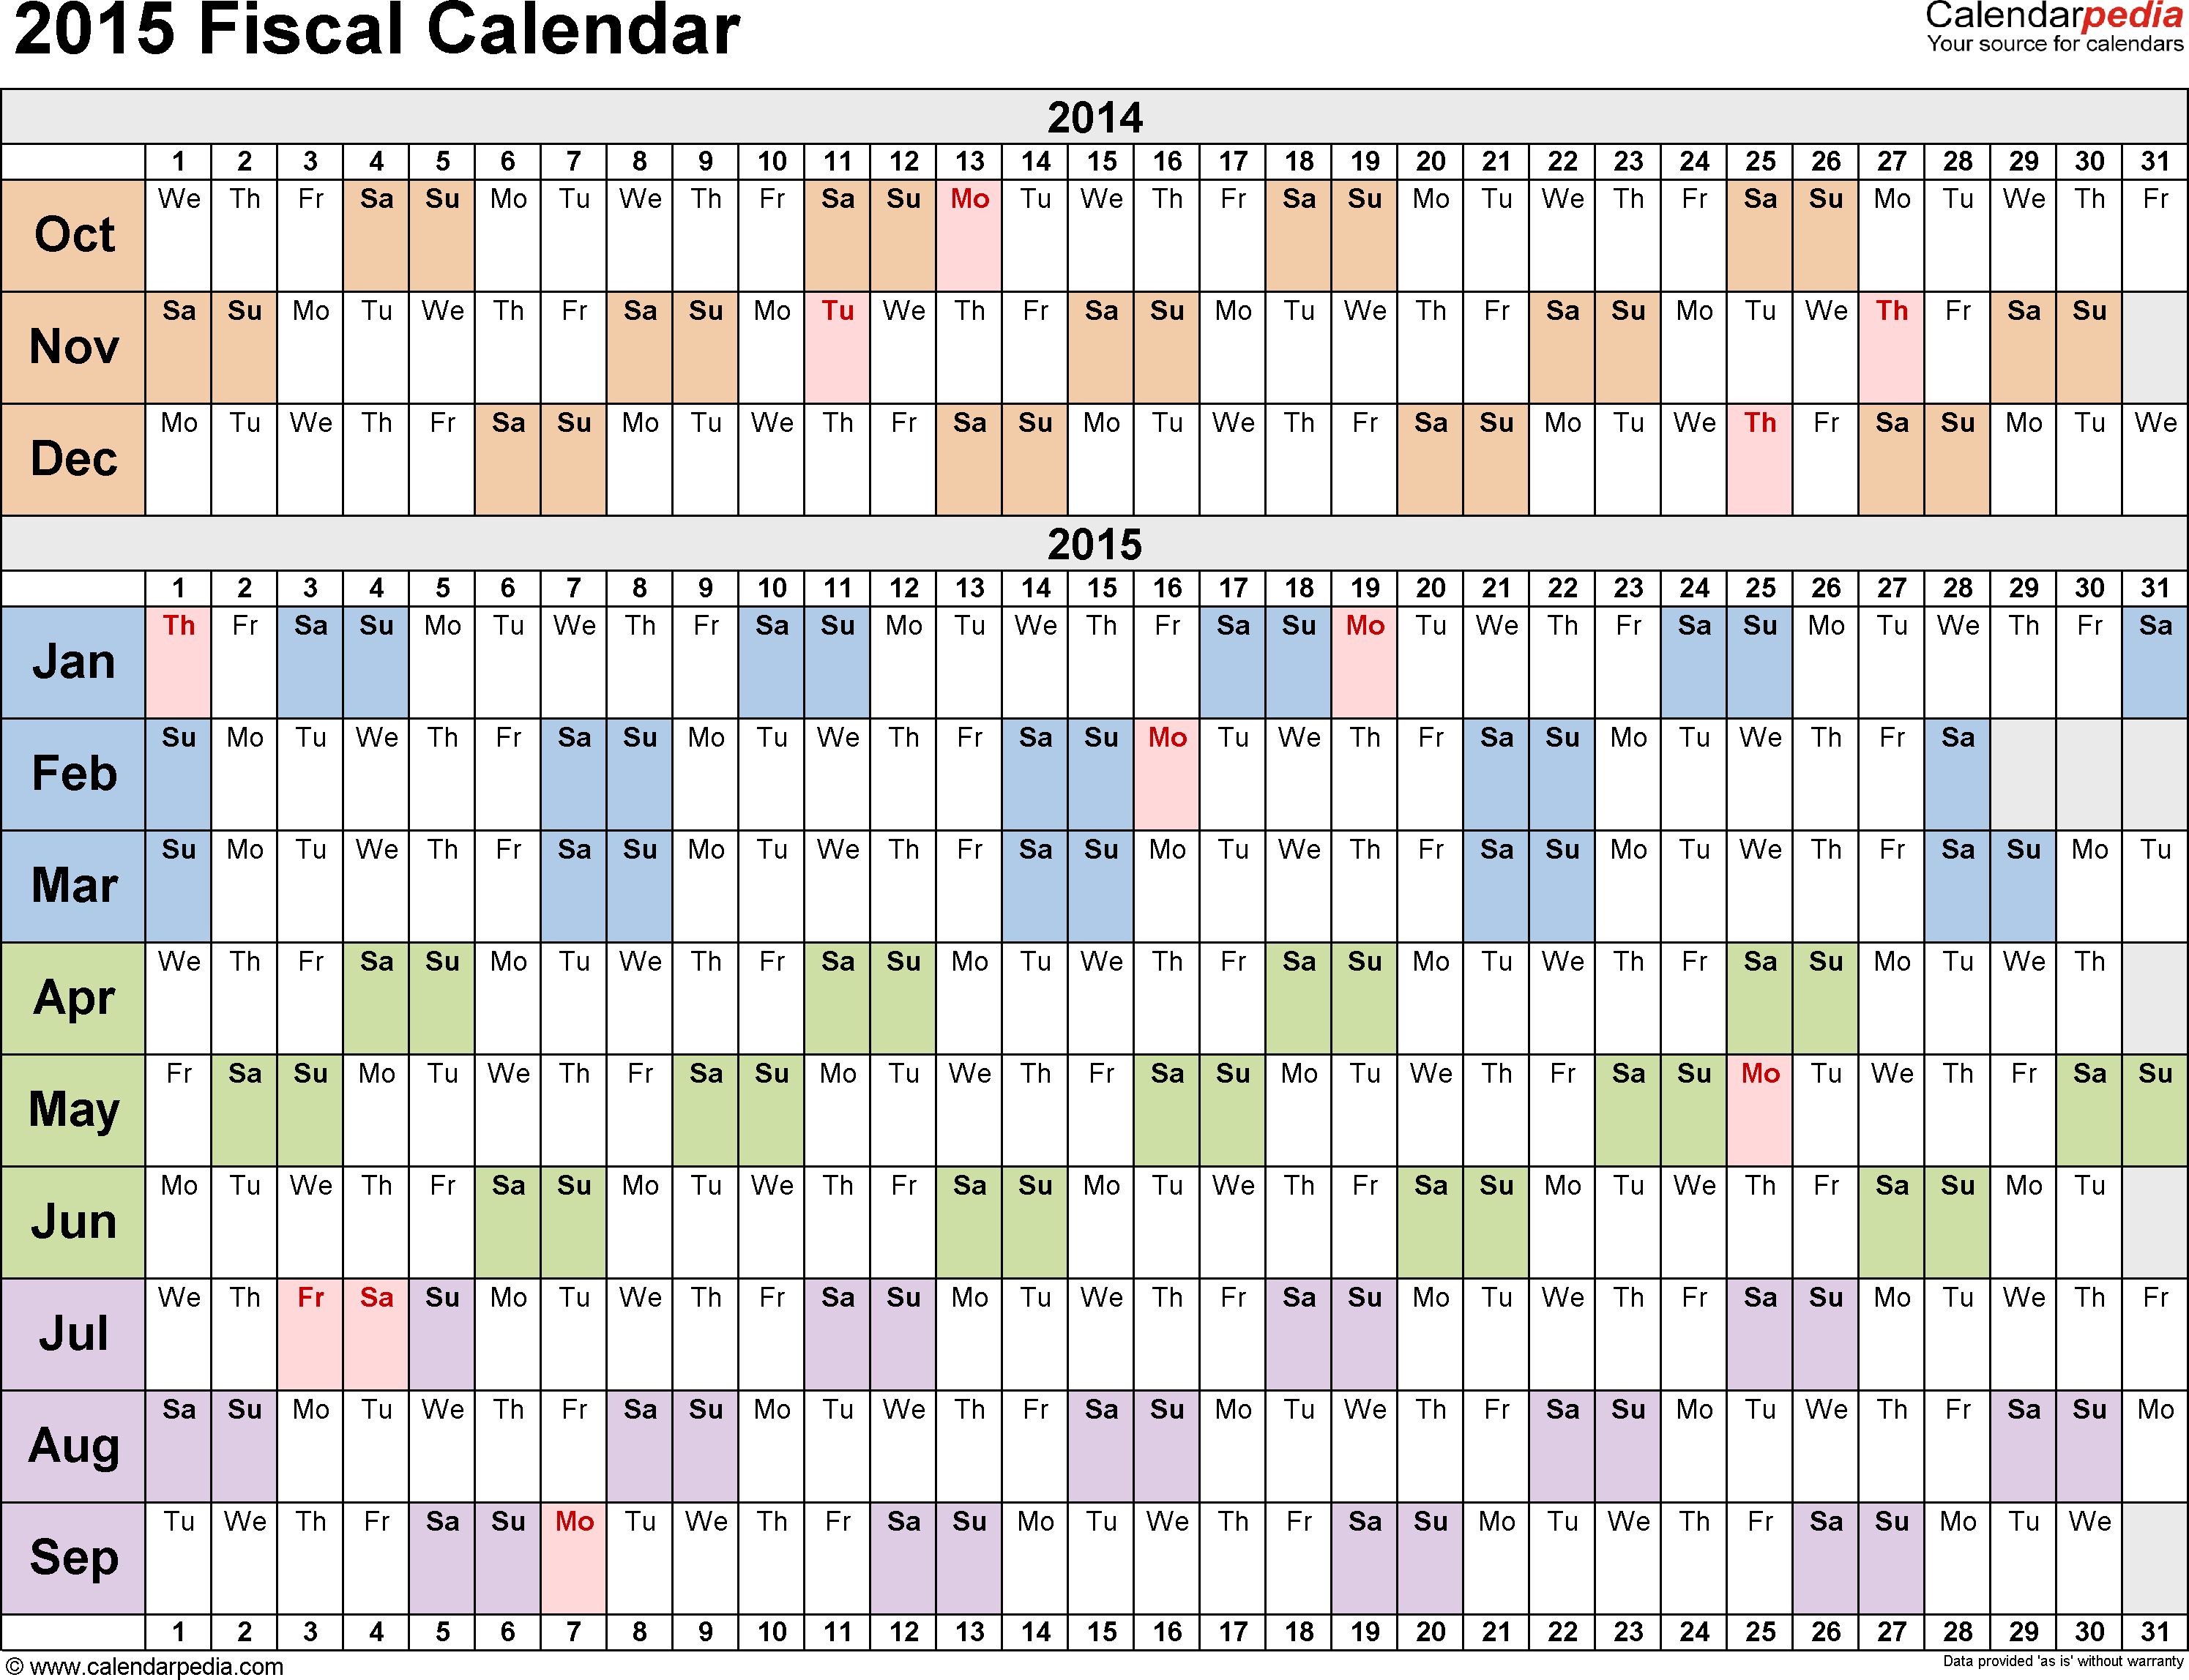 Fiscal Year Calendar Quarters : Fiscal calendars as free printable pdf templates